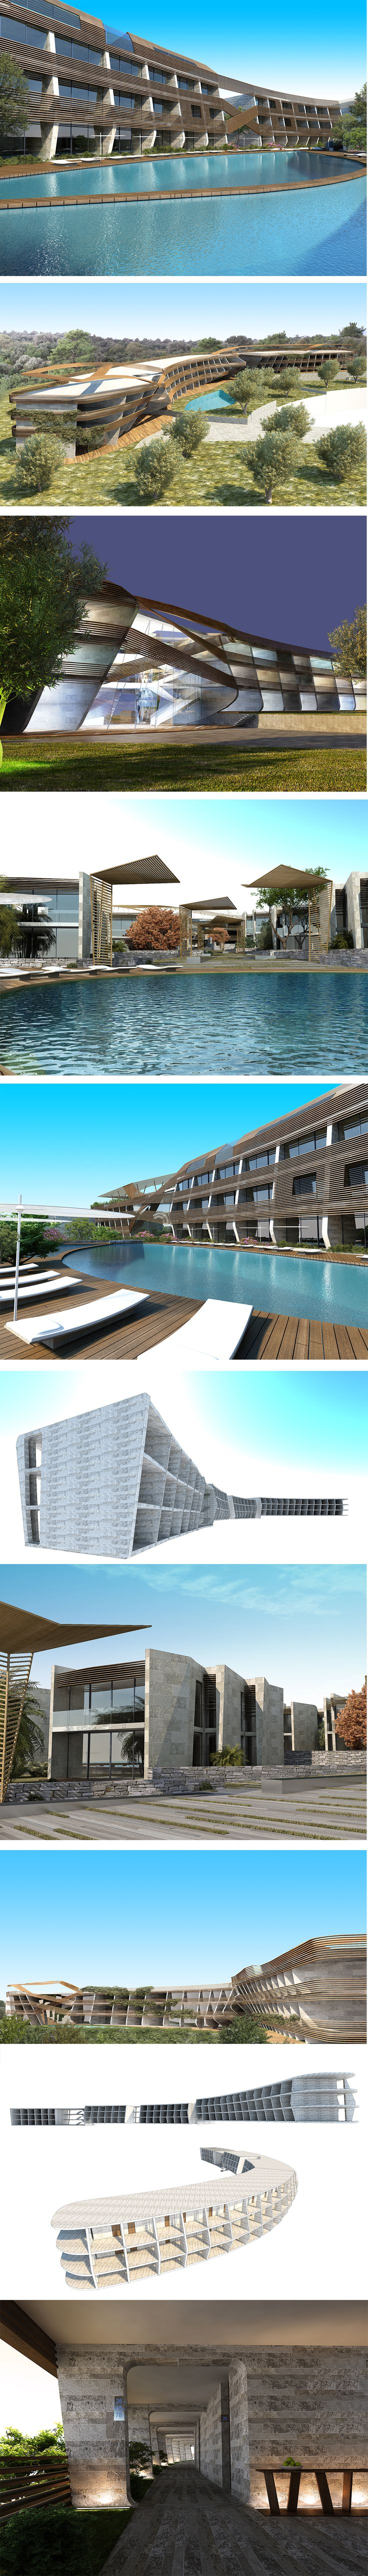 Swissotel Resort Bodrum Beach hotel, a twisting structure, is located on the highest point of the site and serves as the entry gateway to the development.  #hotel #hoteldesign #architecture #architecturaldrawing #GADarchitecture #GAD #interiordesign #turkey #swissotel #turkiye #architect #mimar #mimarlik #pool #plans #villa #bodrum #luxury #largeimage #gokhanavcioglu #gadarchitecture #gadfoundation